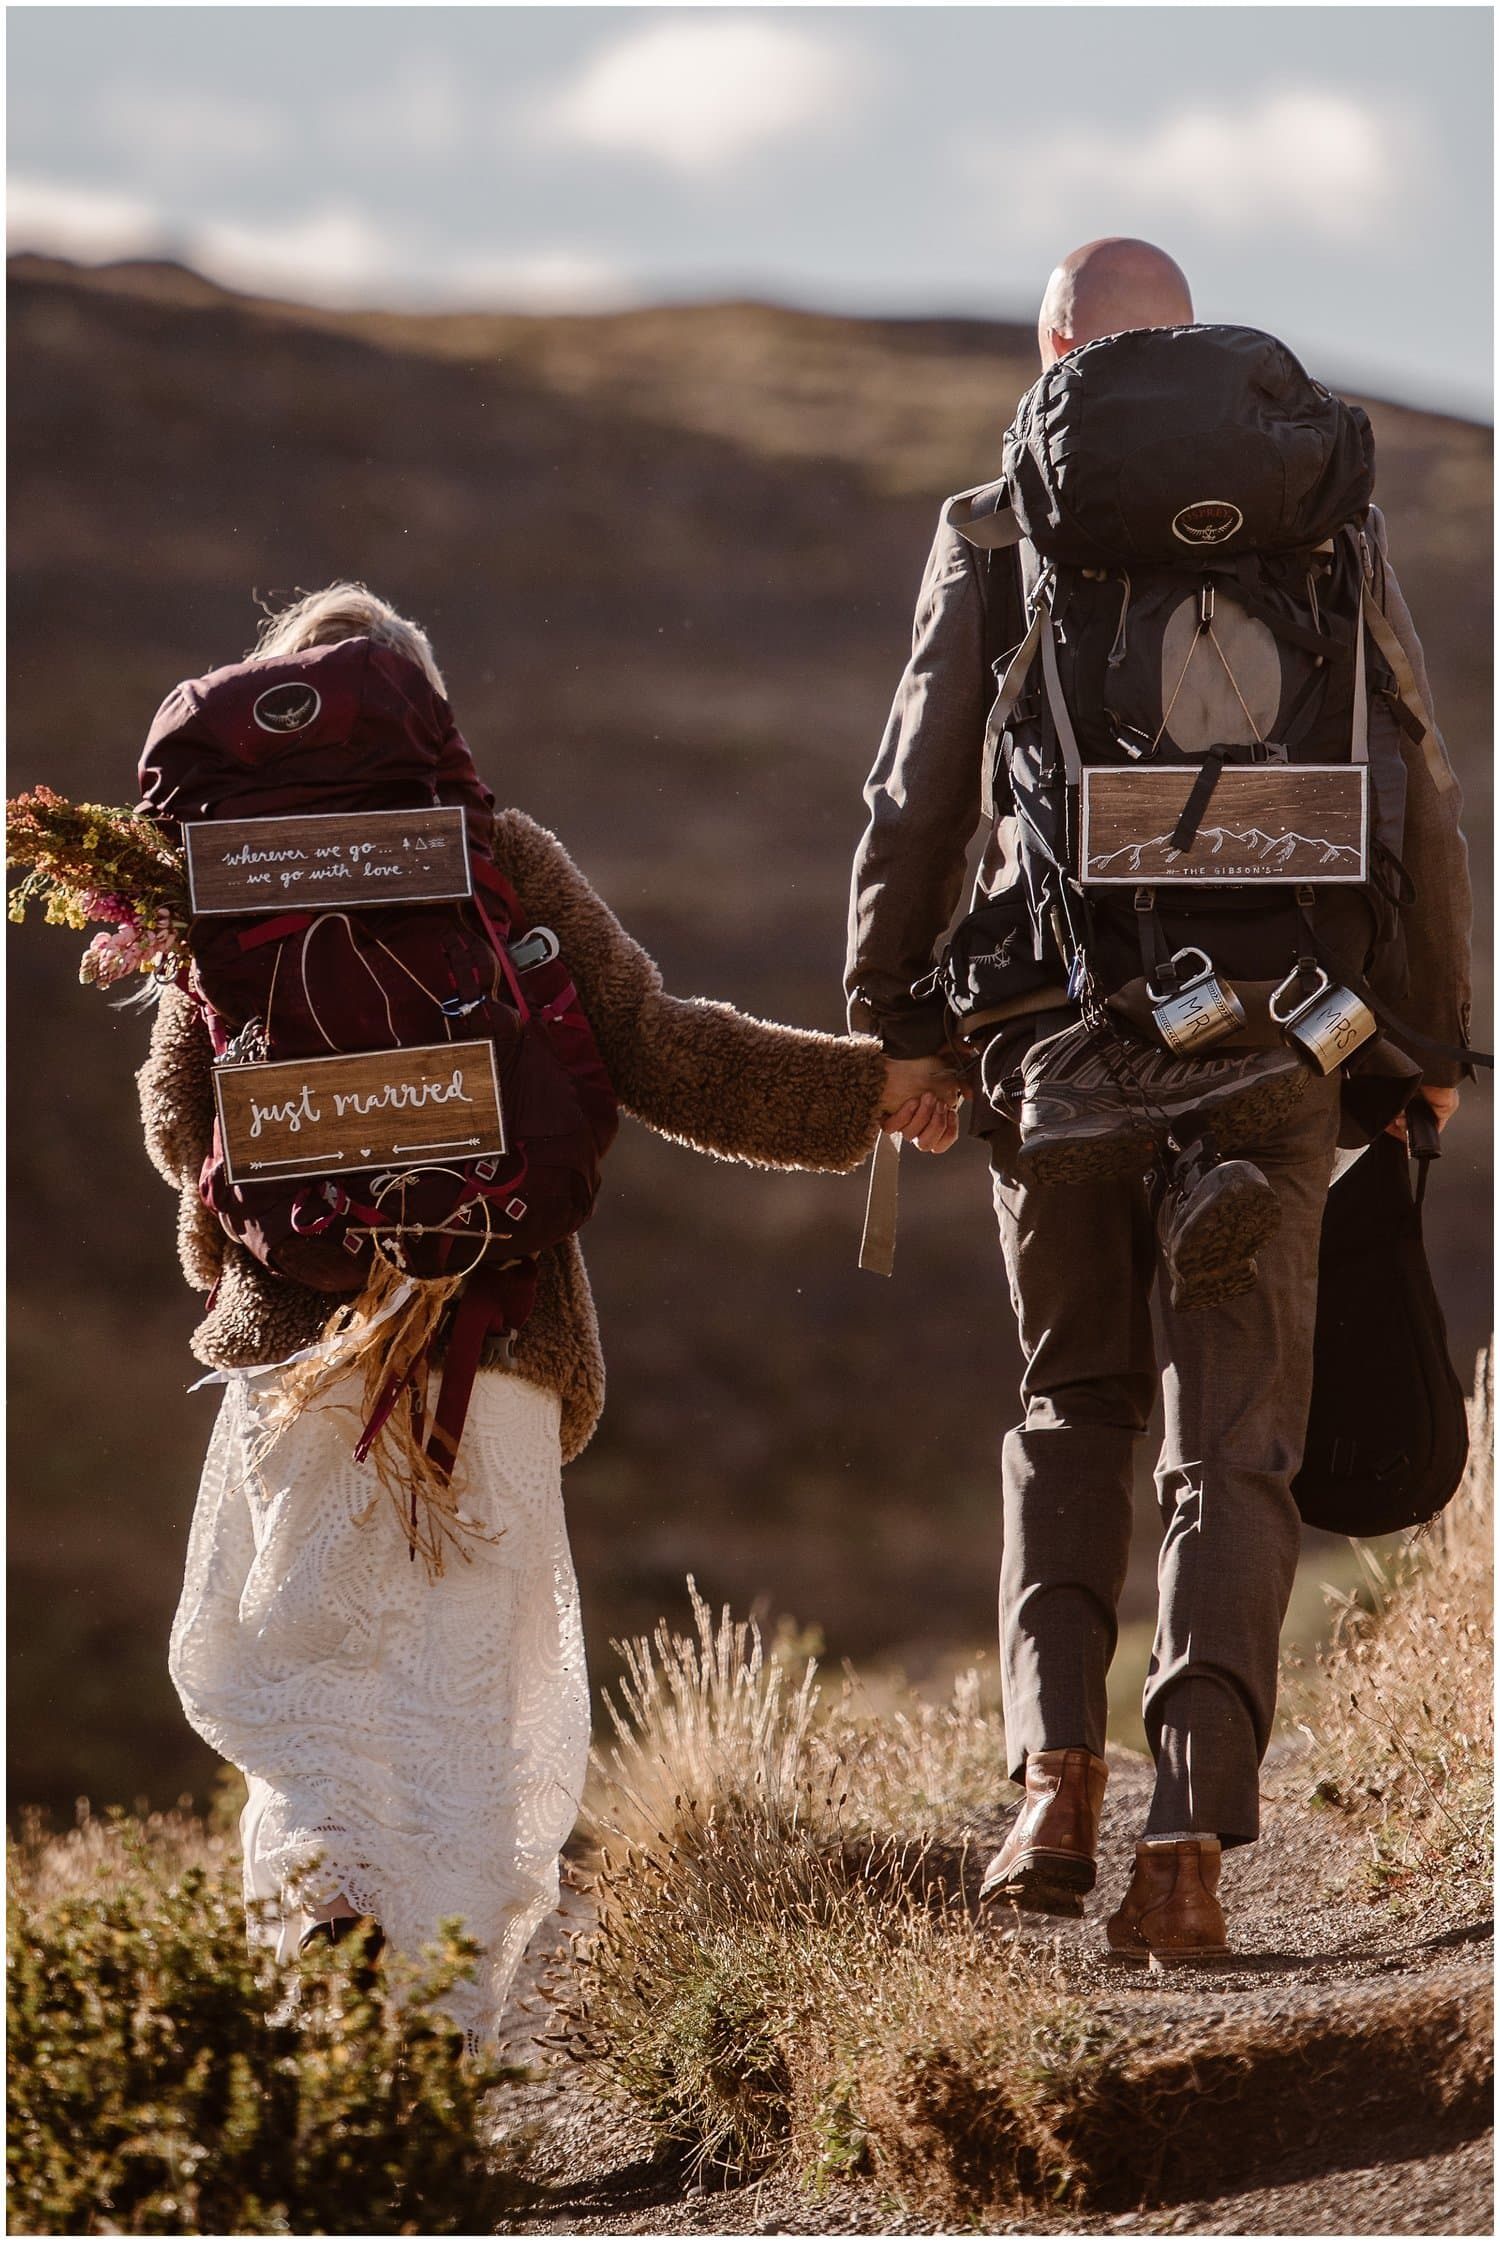 Bride and groom walk hand in hand in the mountains. Both of them are wearing backpacks with wooden married signs attached to them.